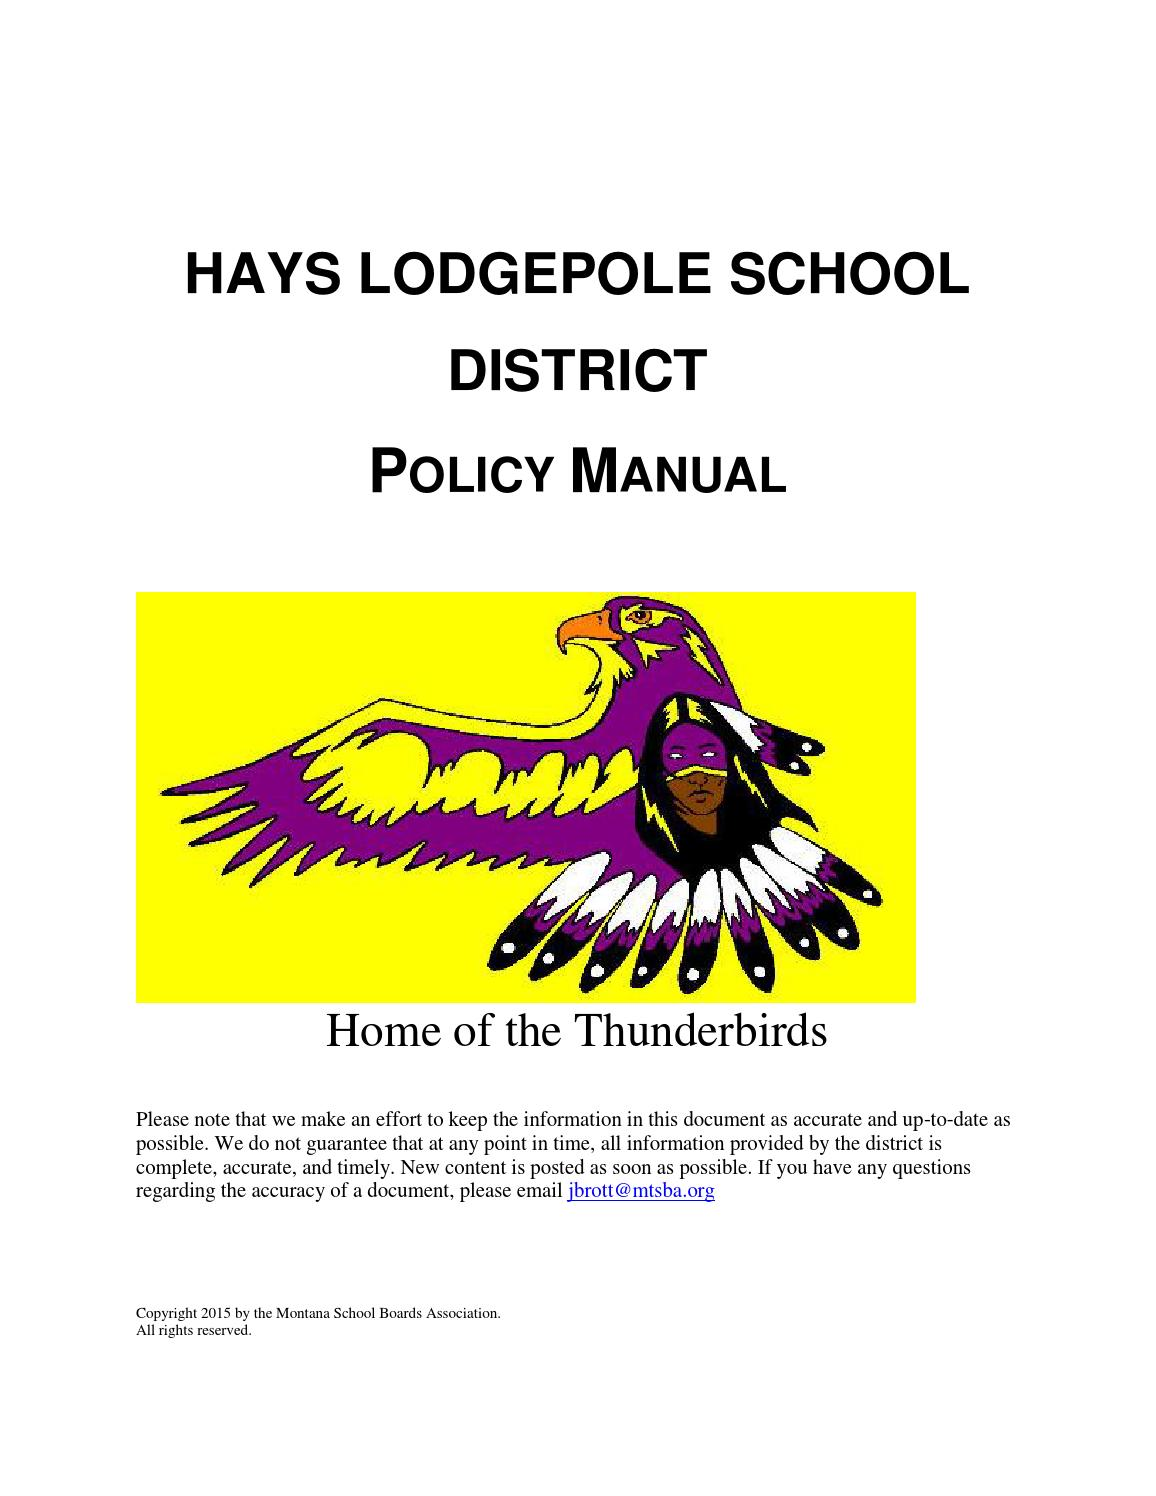 Montana blaine county hays - Hays Lodgepole School District Policy Manual By Montana School Boards Association Issuu